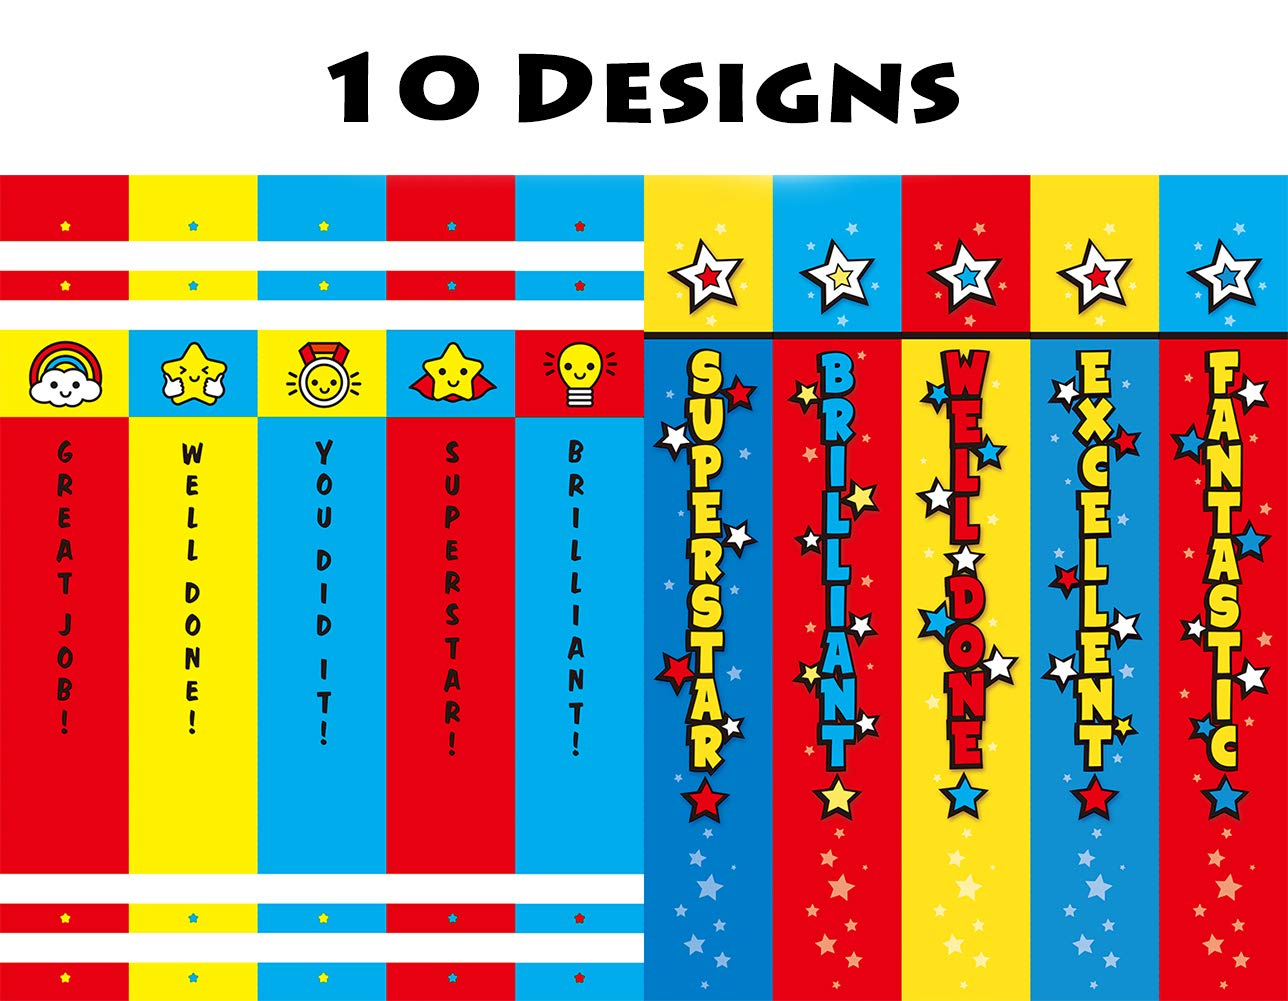 Madisi Assorted Colorful Pencils, Incentive Pencils,#2 HB, 10 Dsigns, 150 Pack, pencils bulk for kids by Madisi (Image #4)